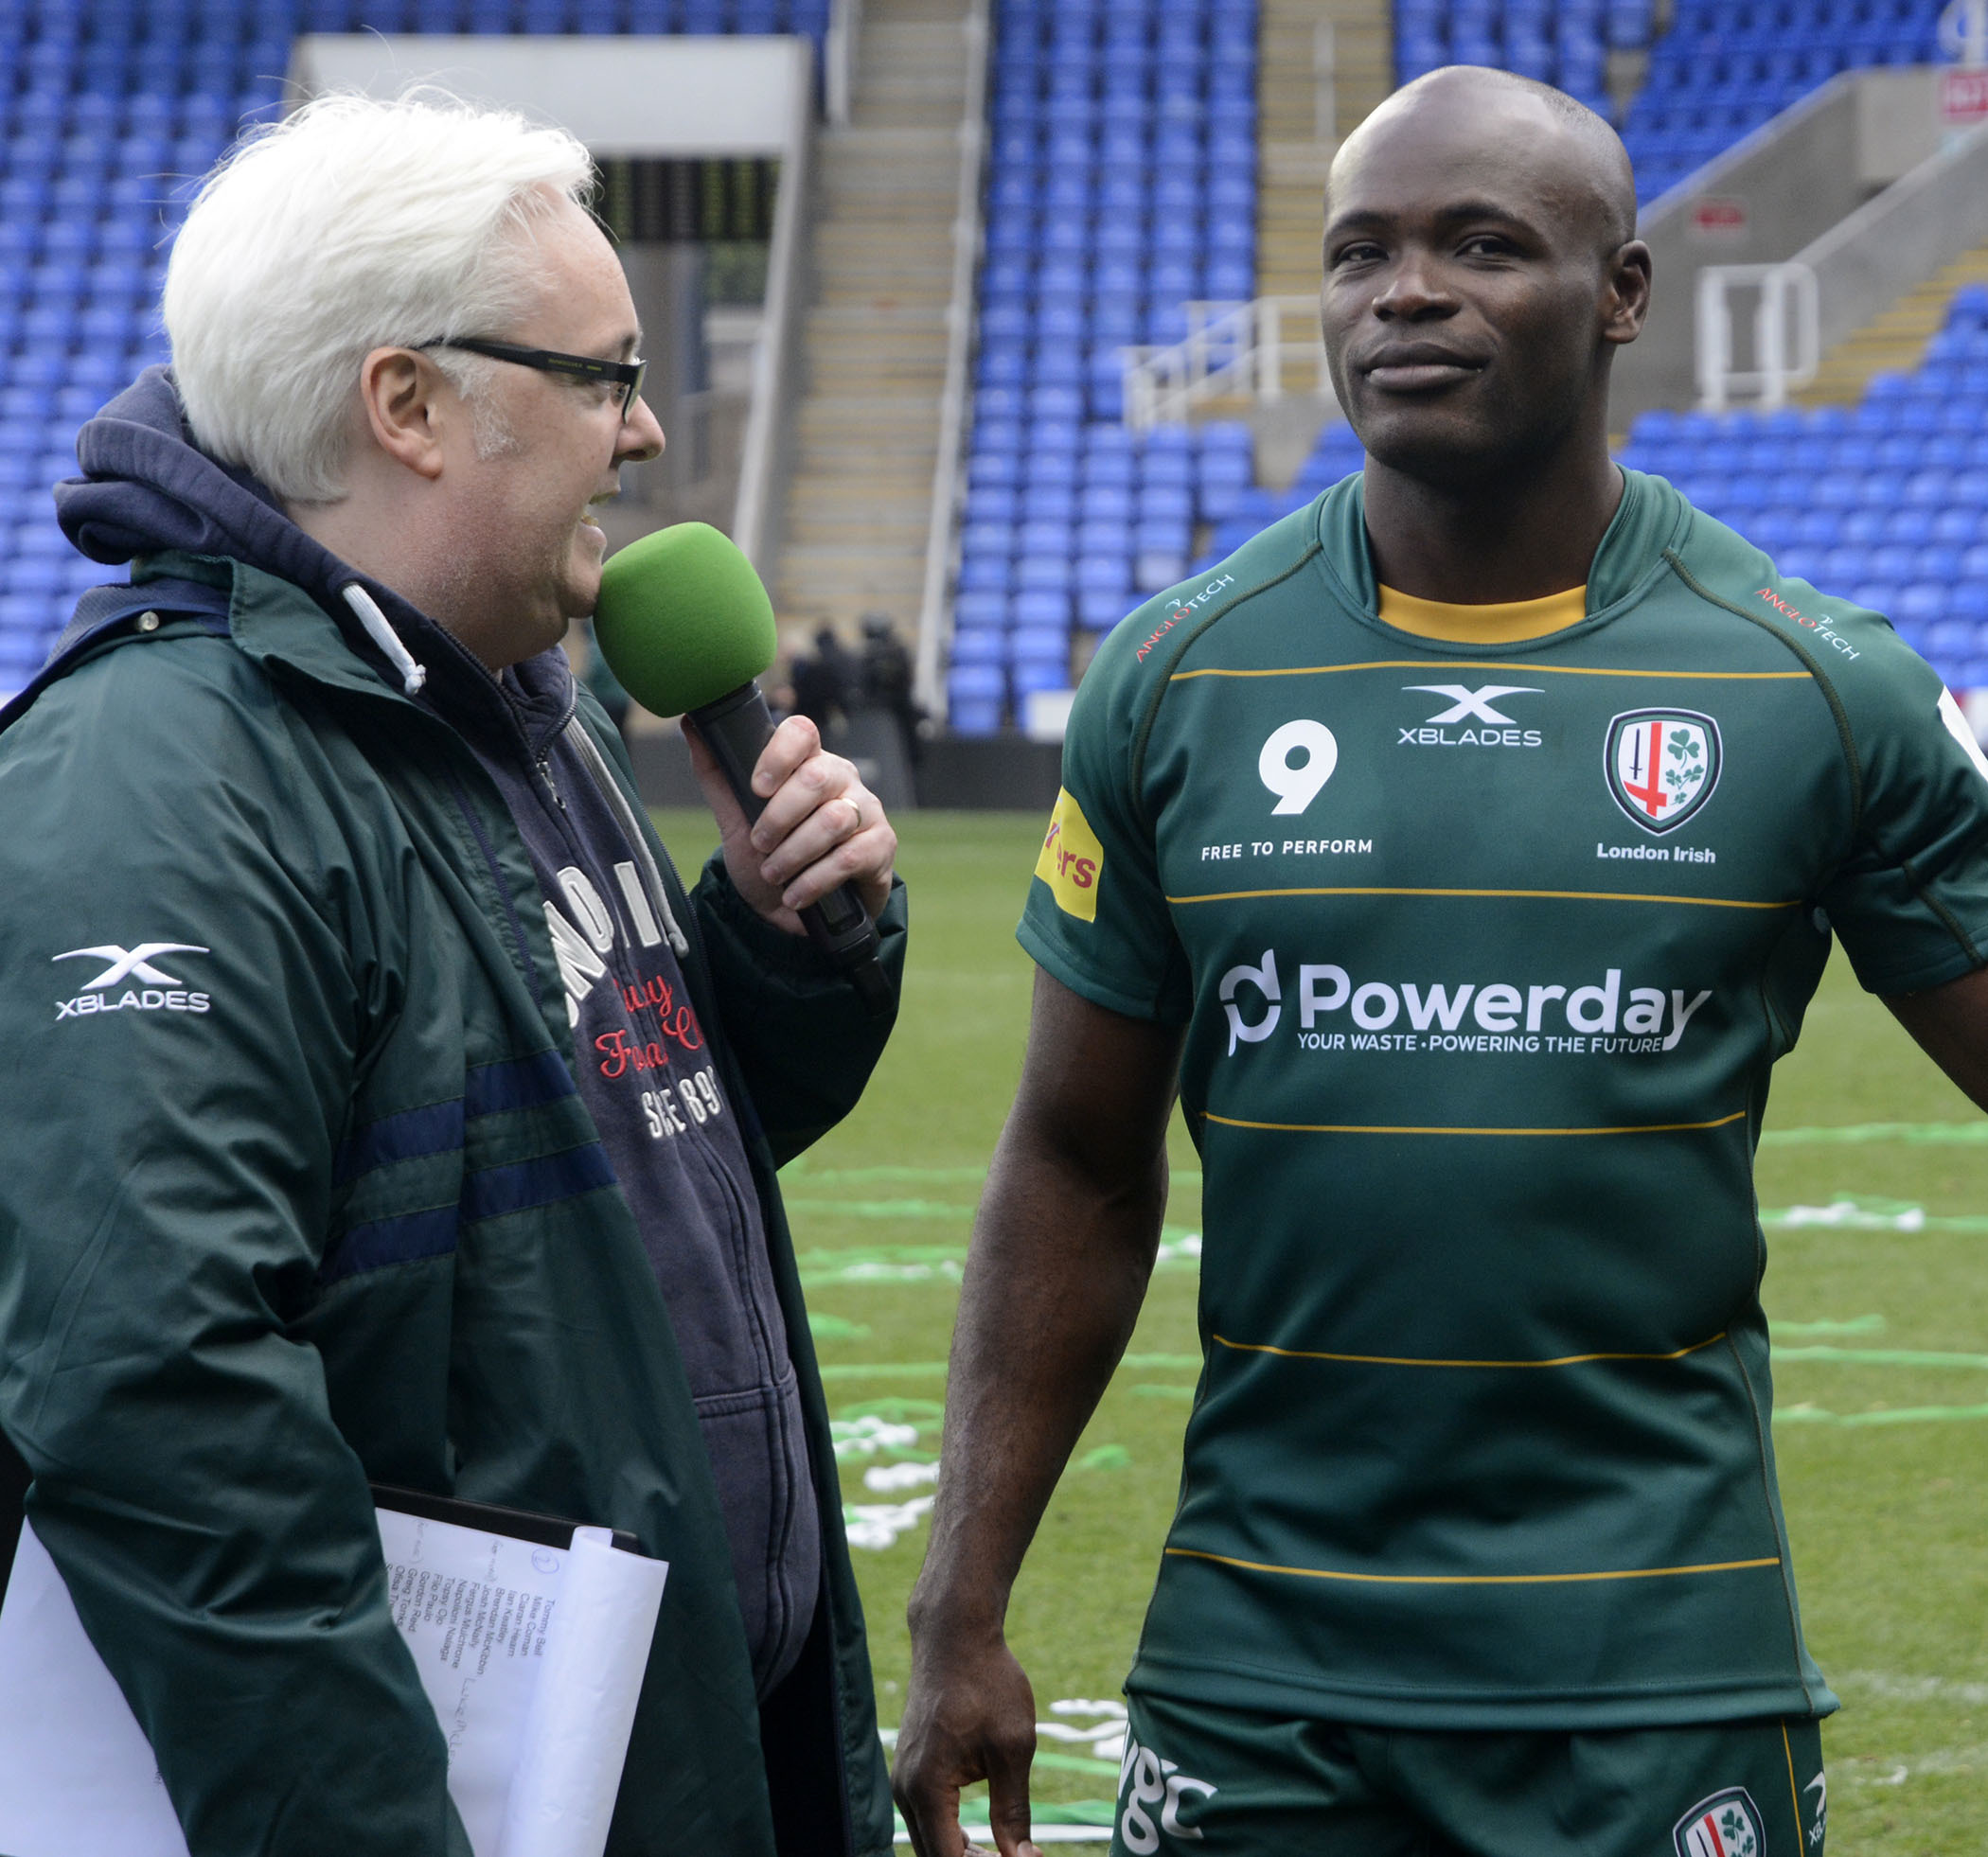 (190480) Topsy Ojo is interviewed after playing his last match for the club after London Irish (green) v Ealing Trailfinders - pics by Paul Johns.